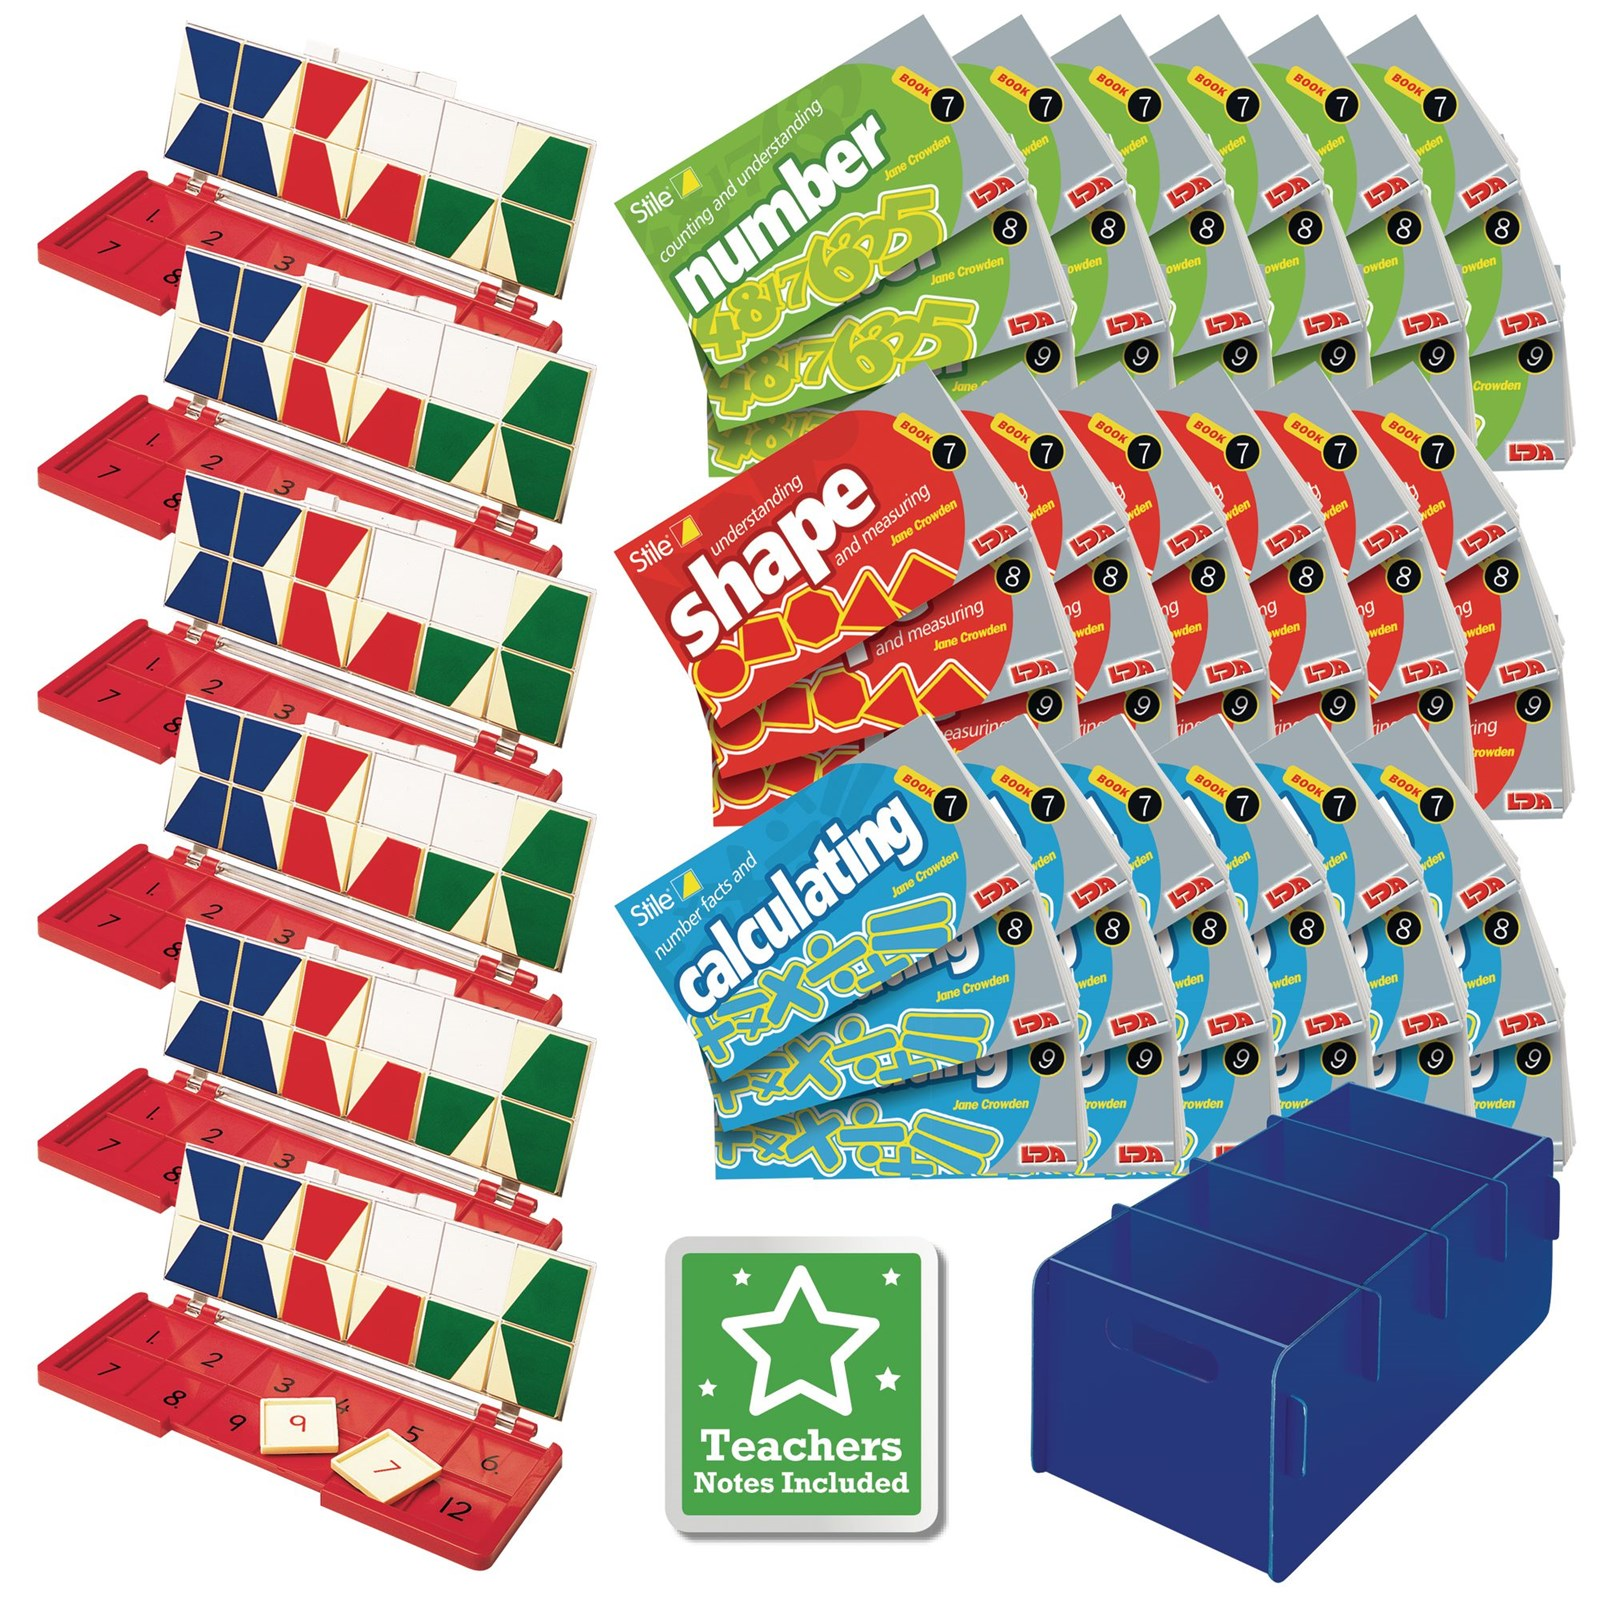 Stile Year 5/P6 Pack - Age 9-10 - Multipack